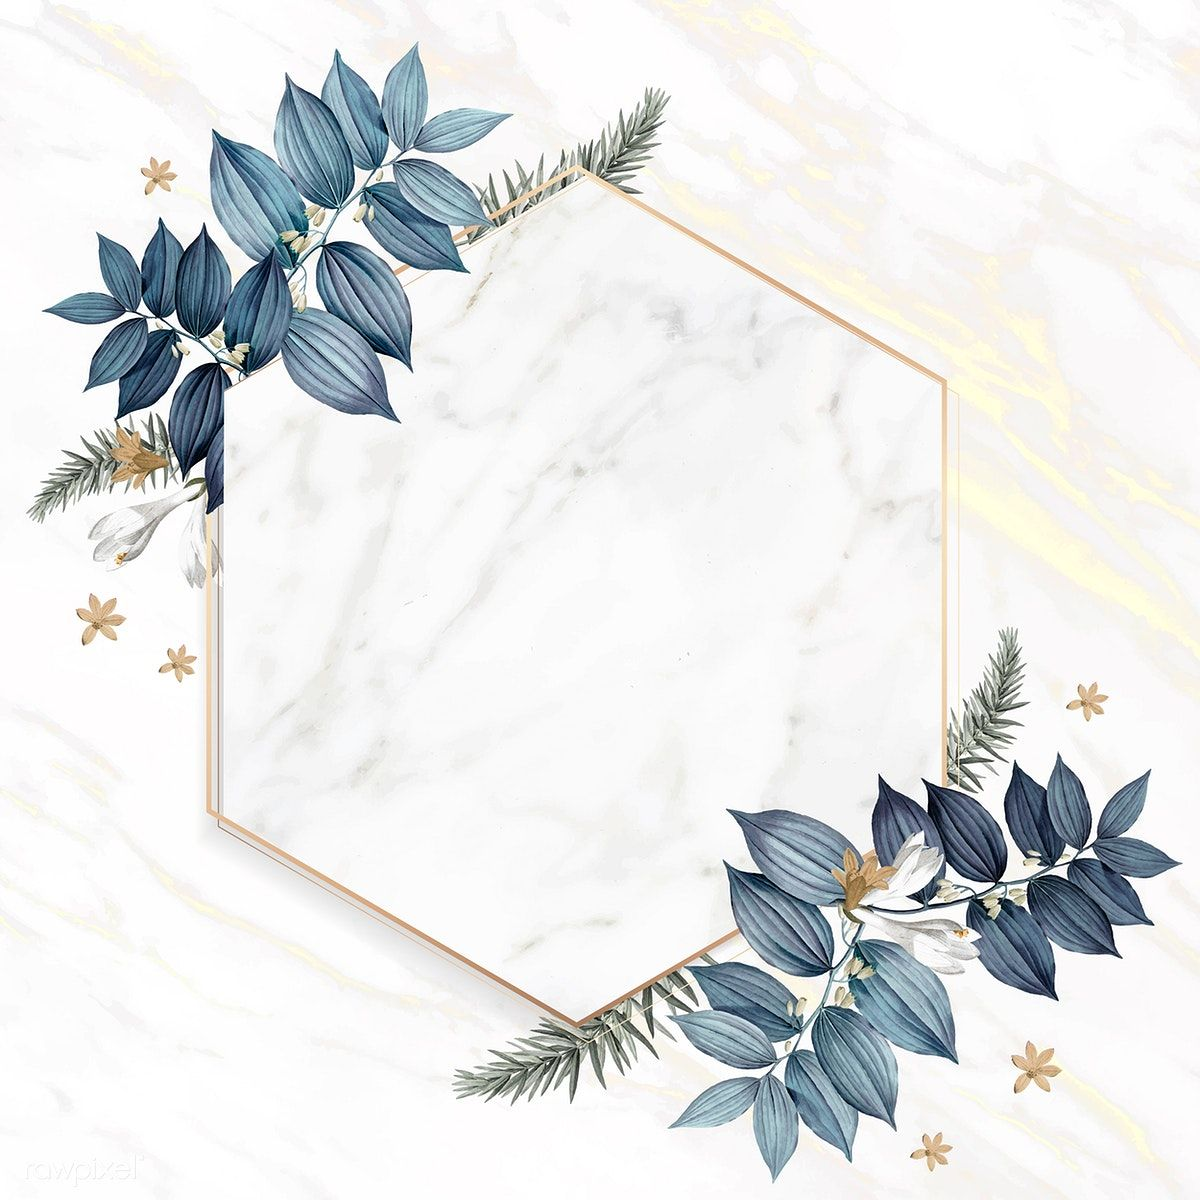 Download premium vector of Hexagon foliage frame on white marble background vector by Adjima about Hexagon foliage leaf frame, geometric marble gold, hexagon floral frame, hexagon gold frame, and marble floral background 936128